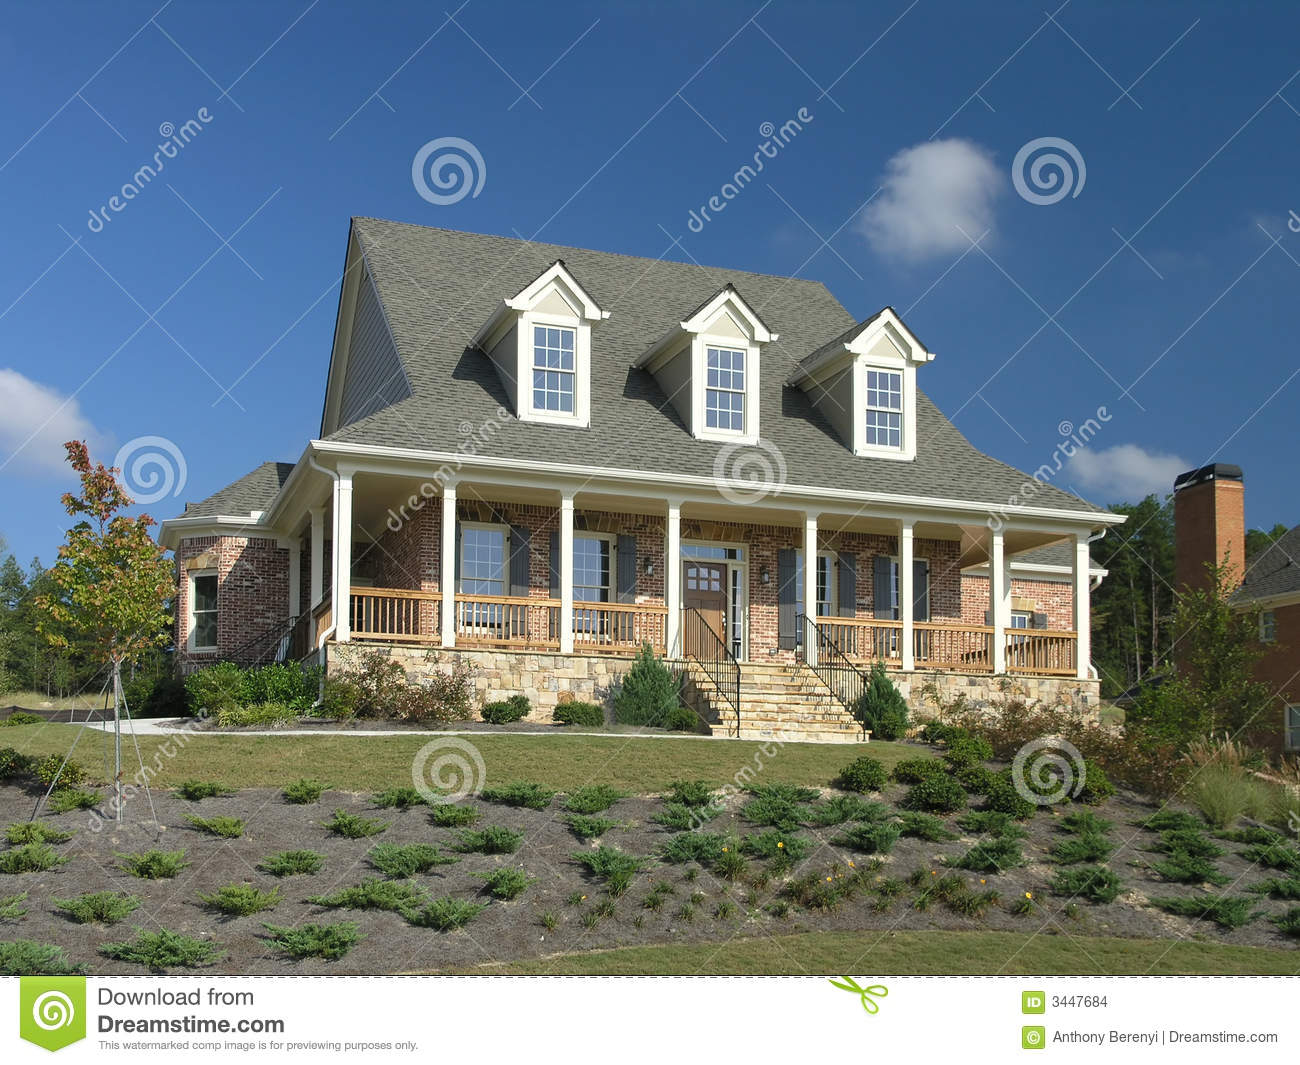 Luxury Home Exterior 17 Stock Images Image 3447684